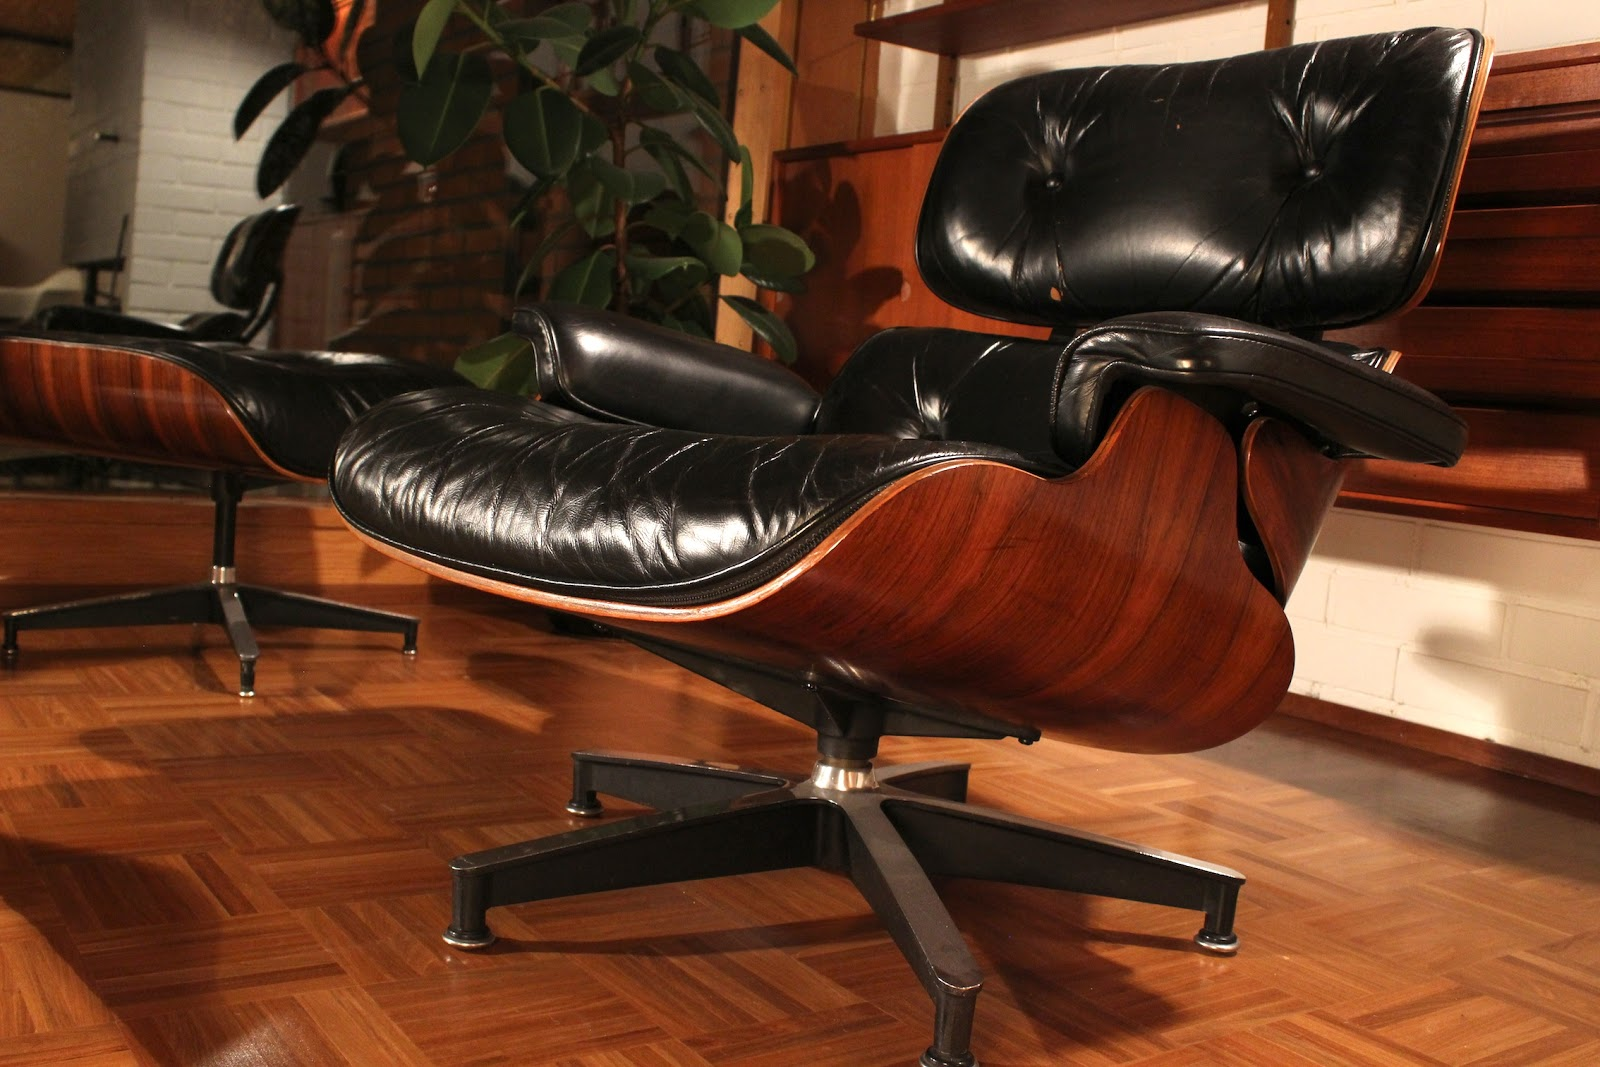 Eames Lounge Chair Used With Casters Olive Green